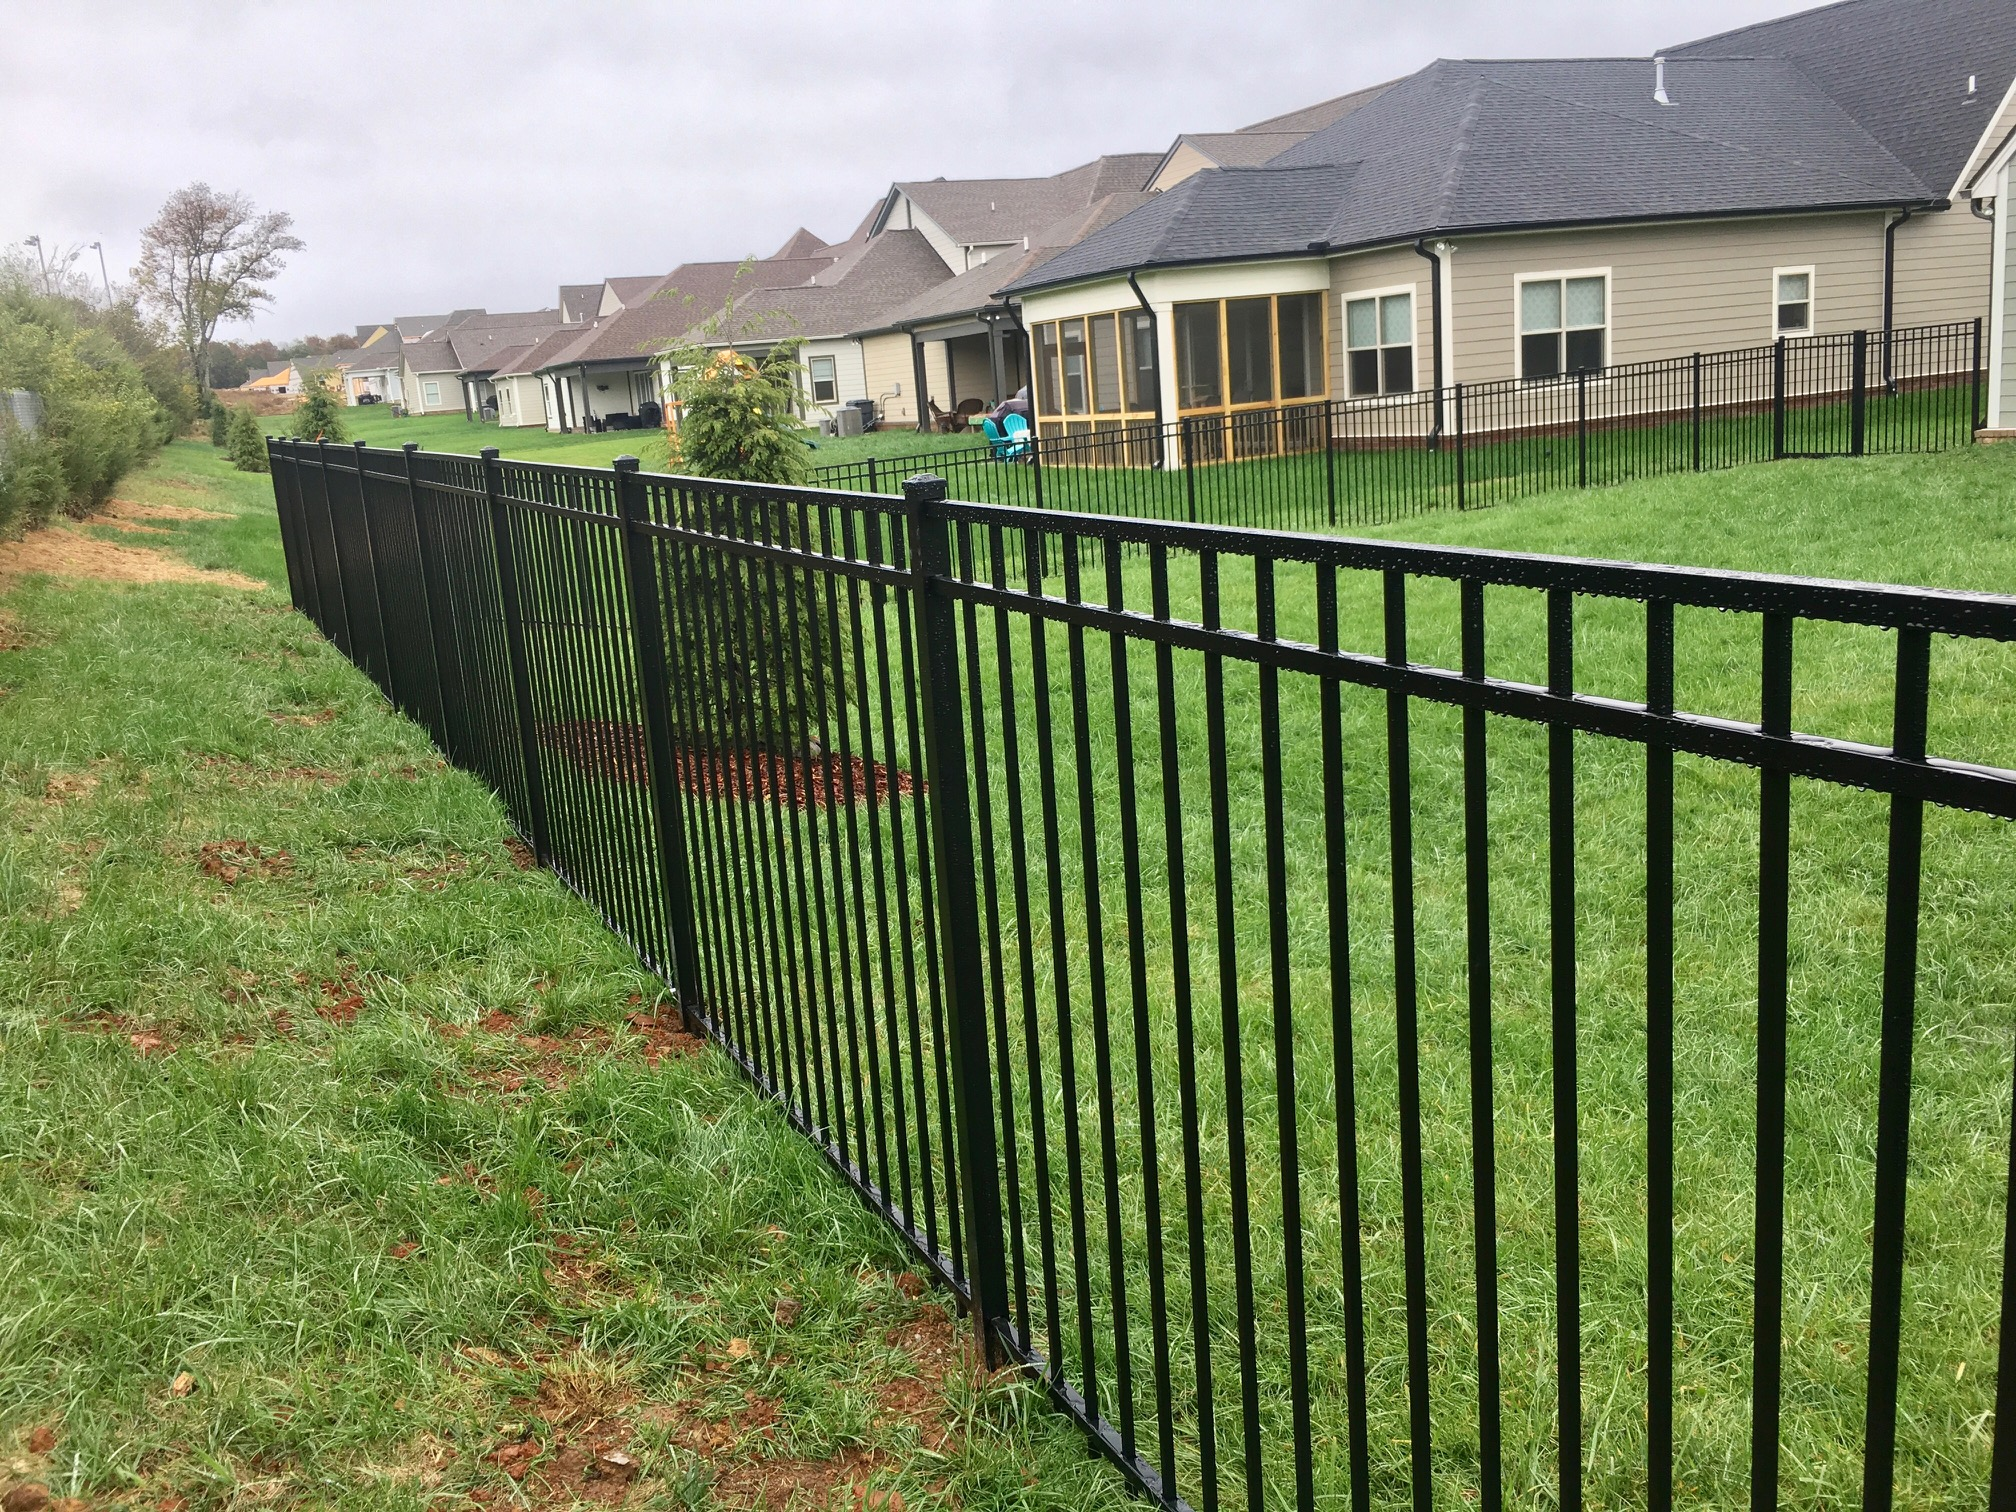 5ft Black Aluminum Fence